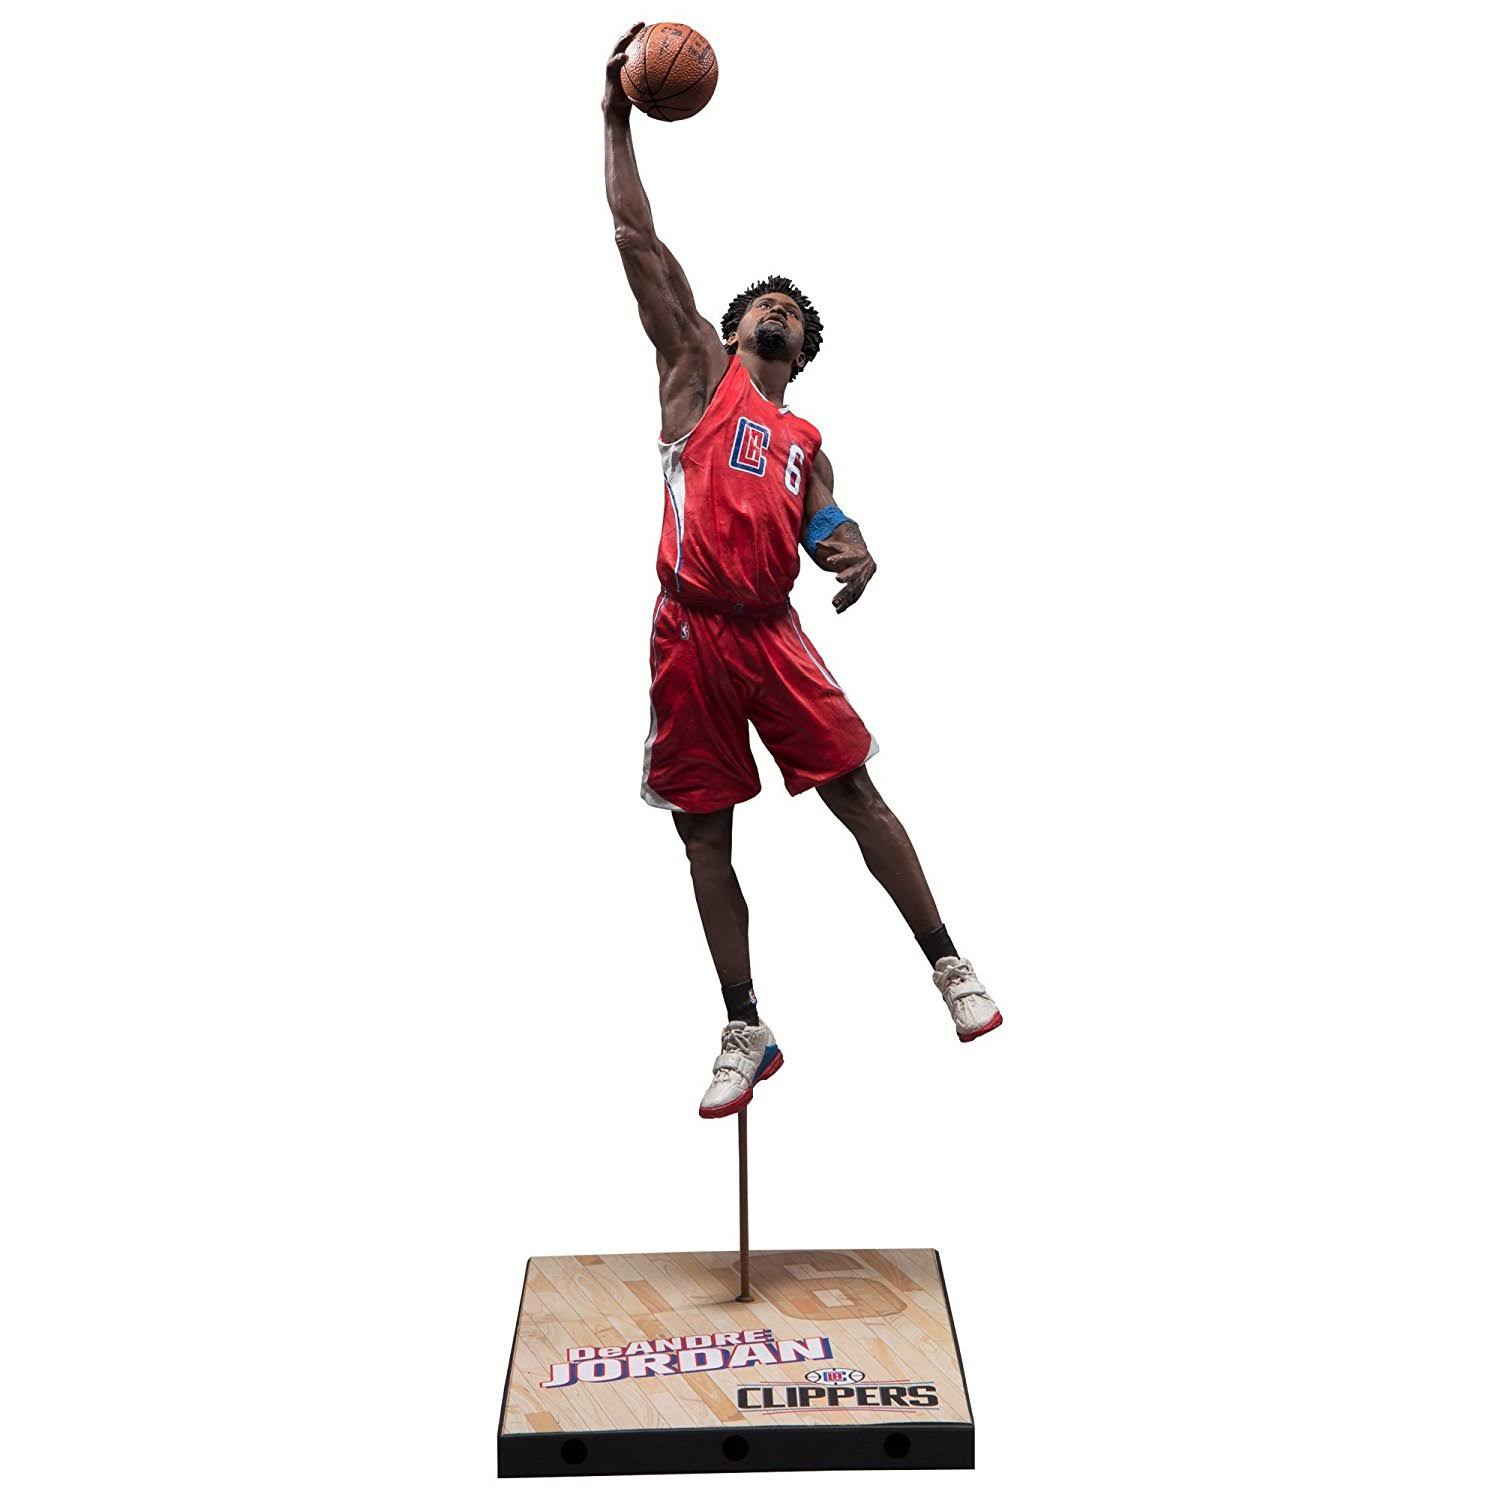 McFarlane Nba Series DeAndre Jordan Los Angeles Clippers Collectible Action Figure - 7""